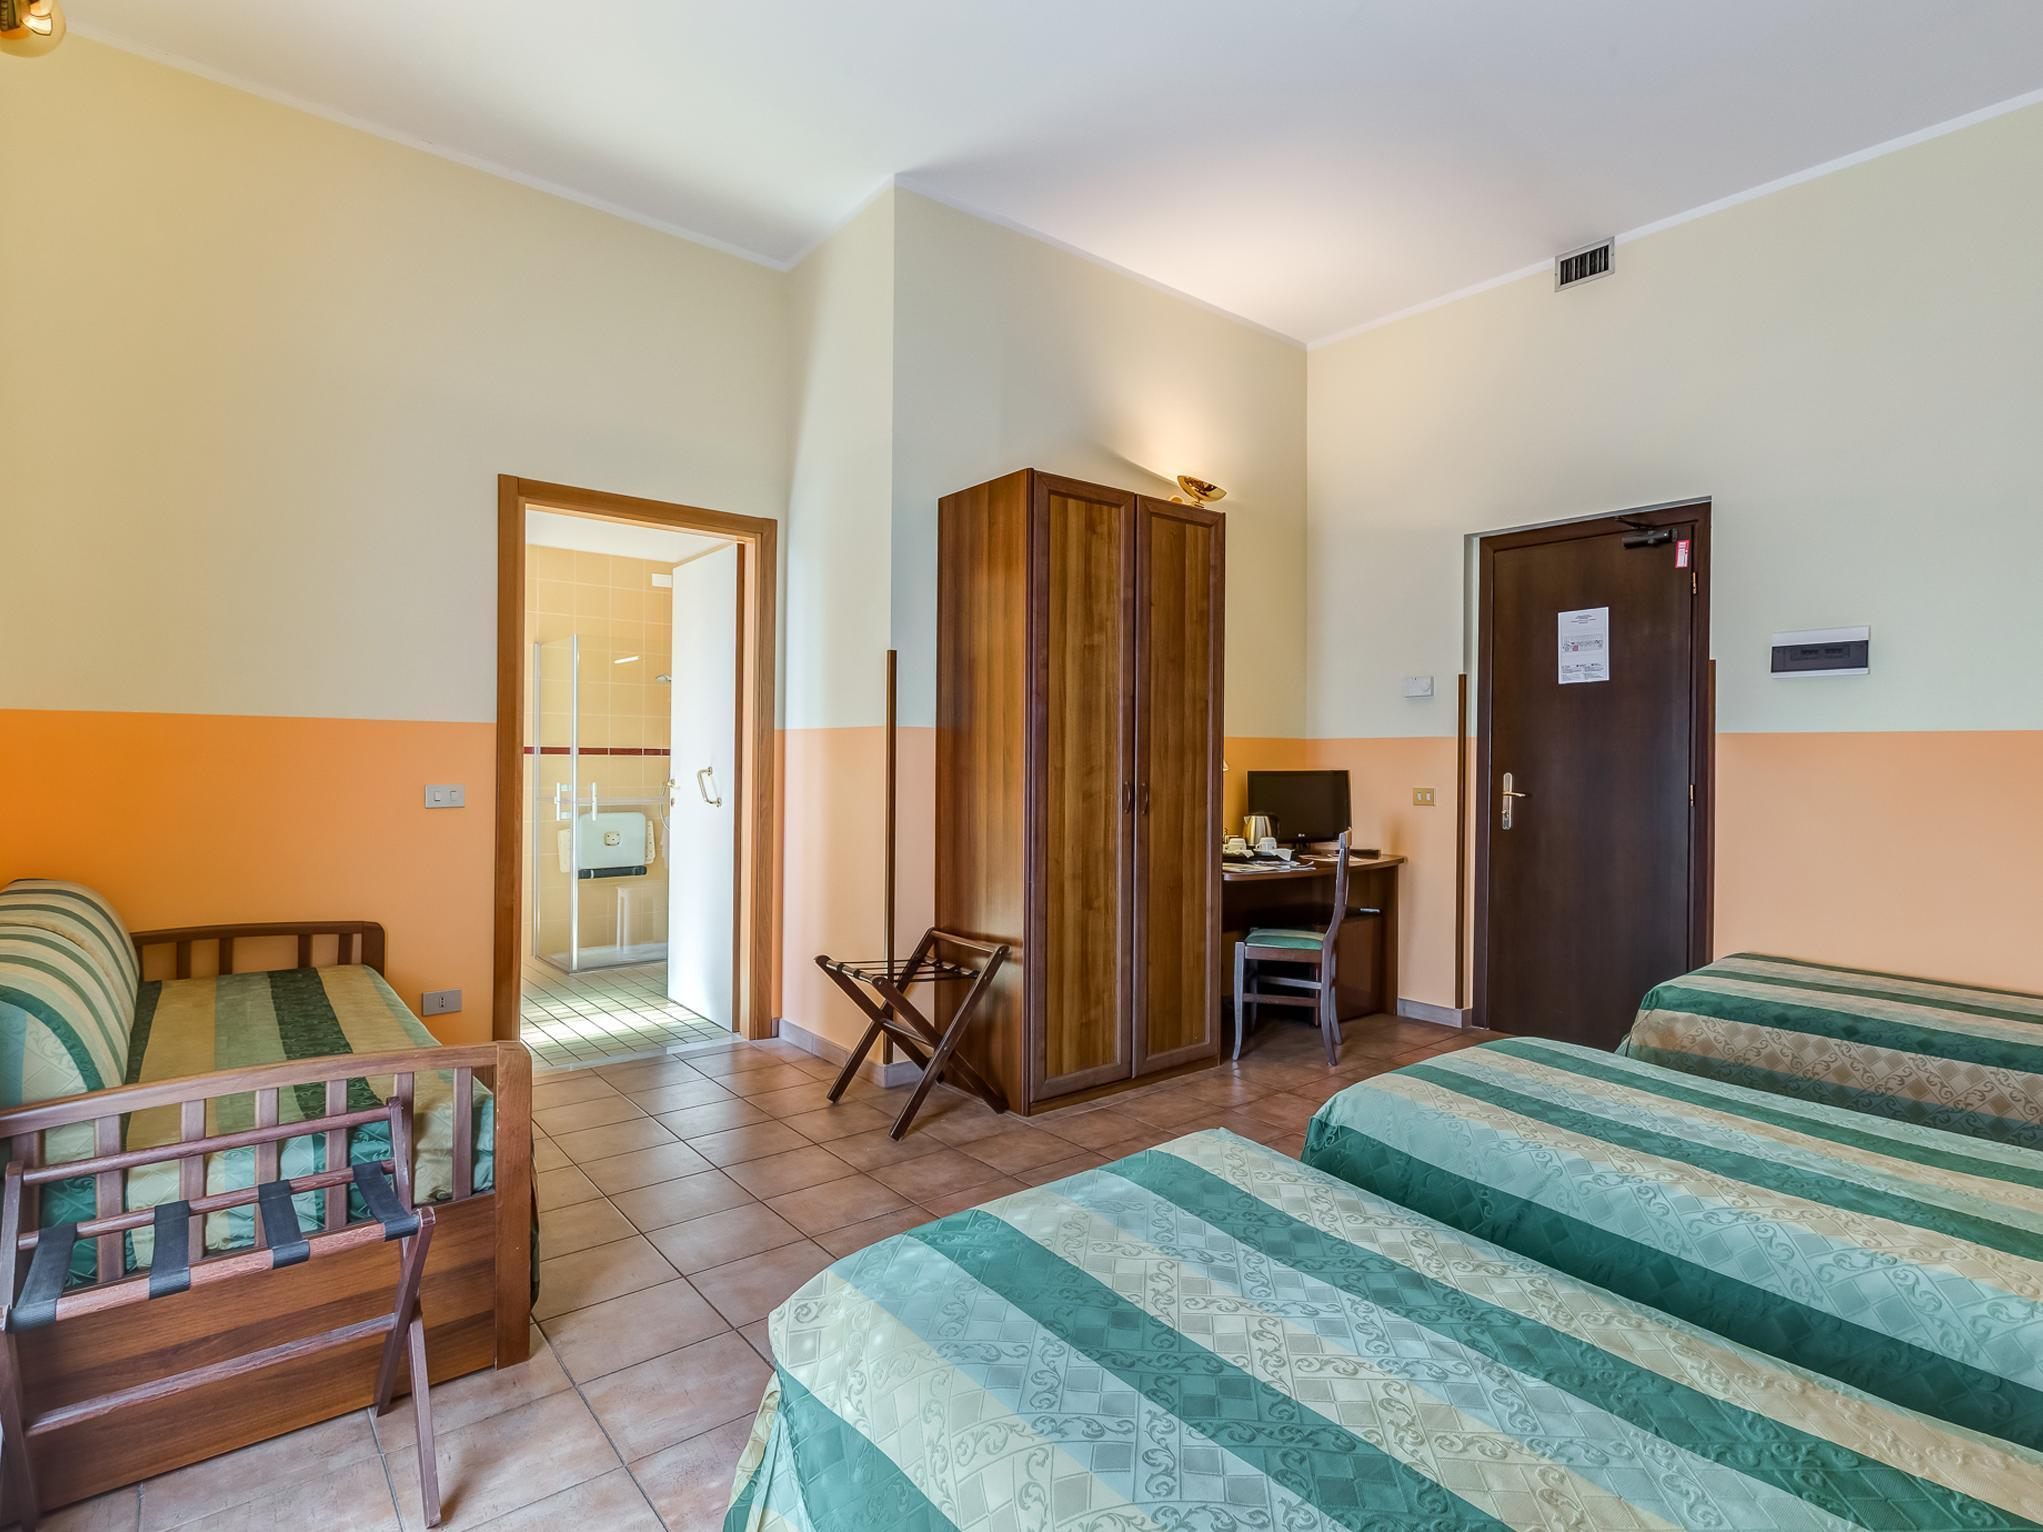 Letto A Castello Cia International.Domus Carmelitana Guest House Guesthouse Bed And Breakfast Rome